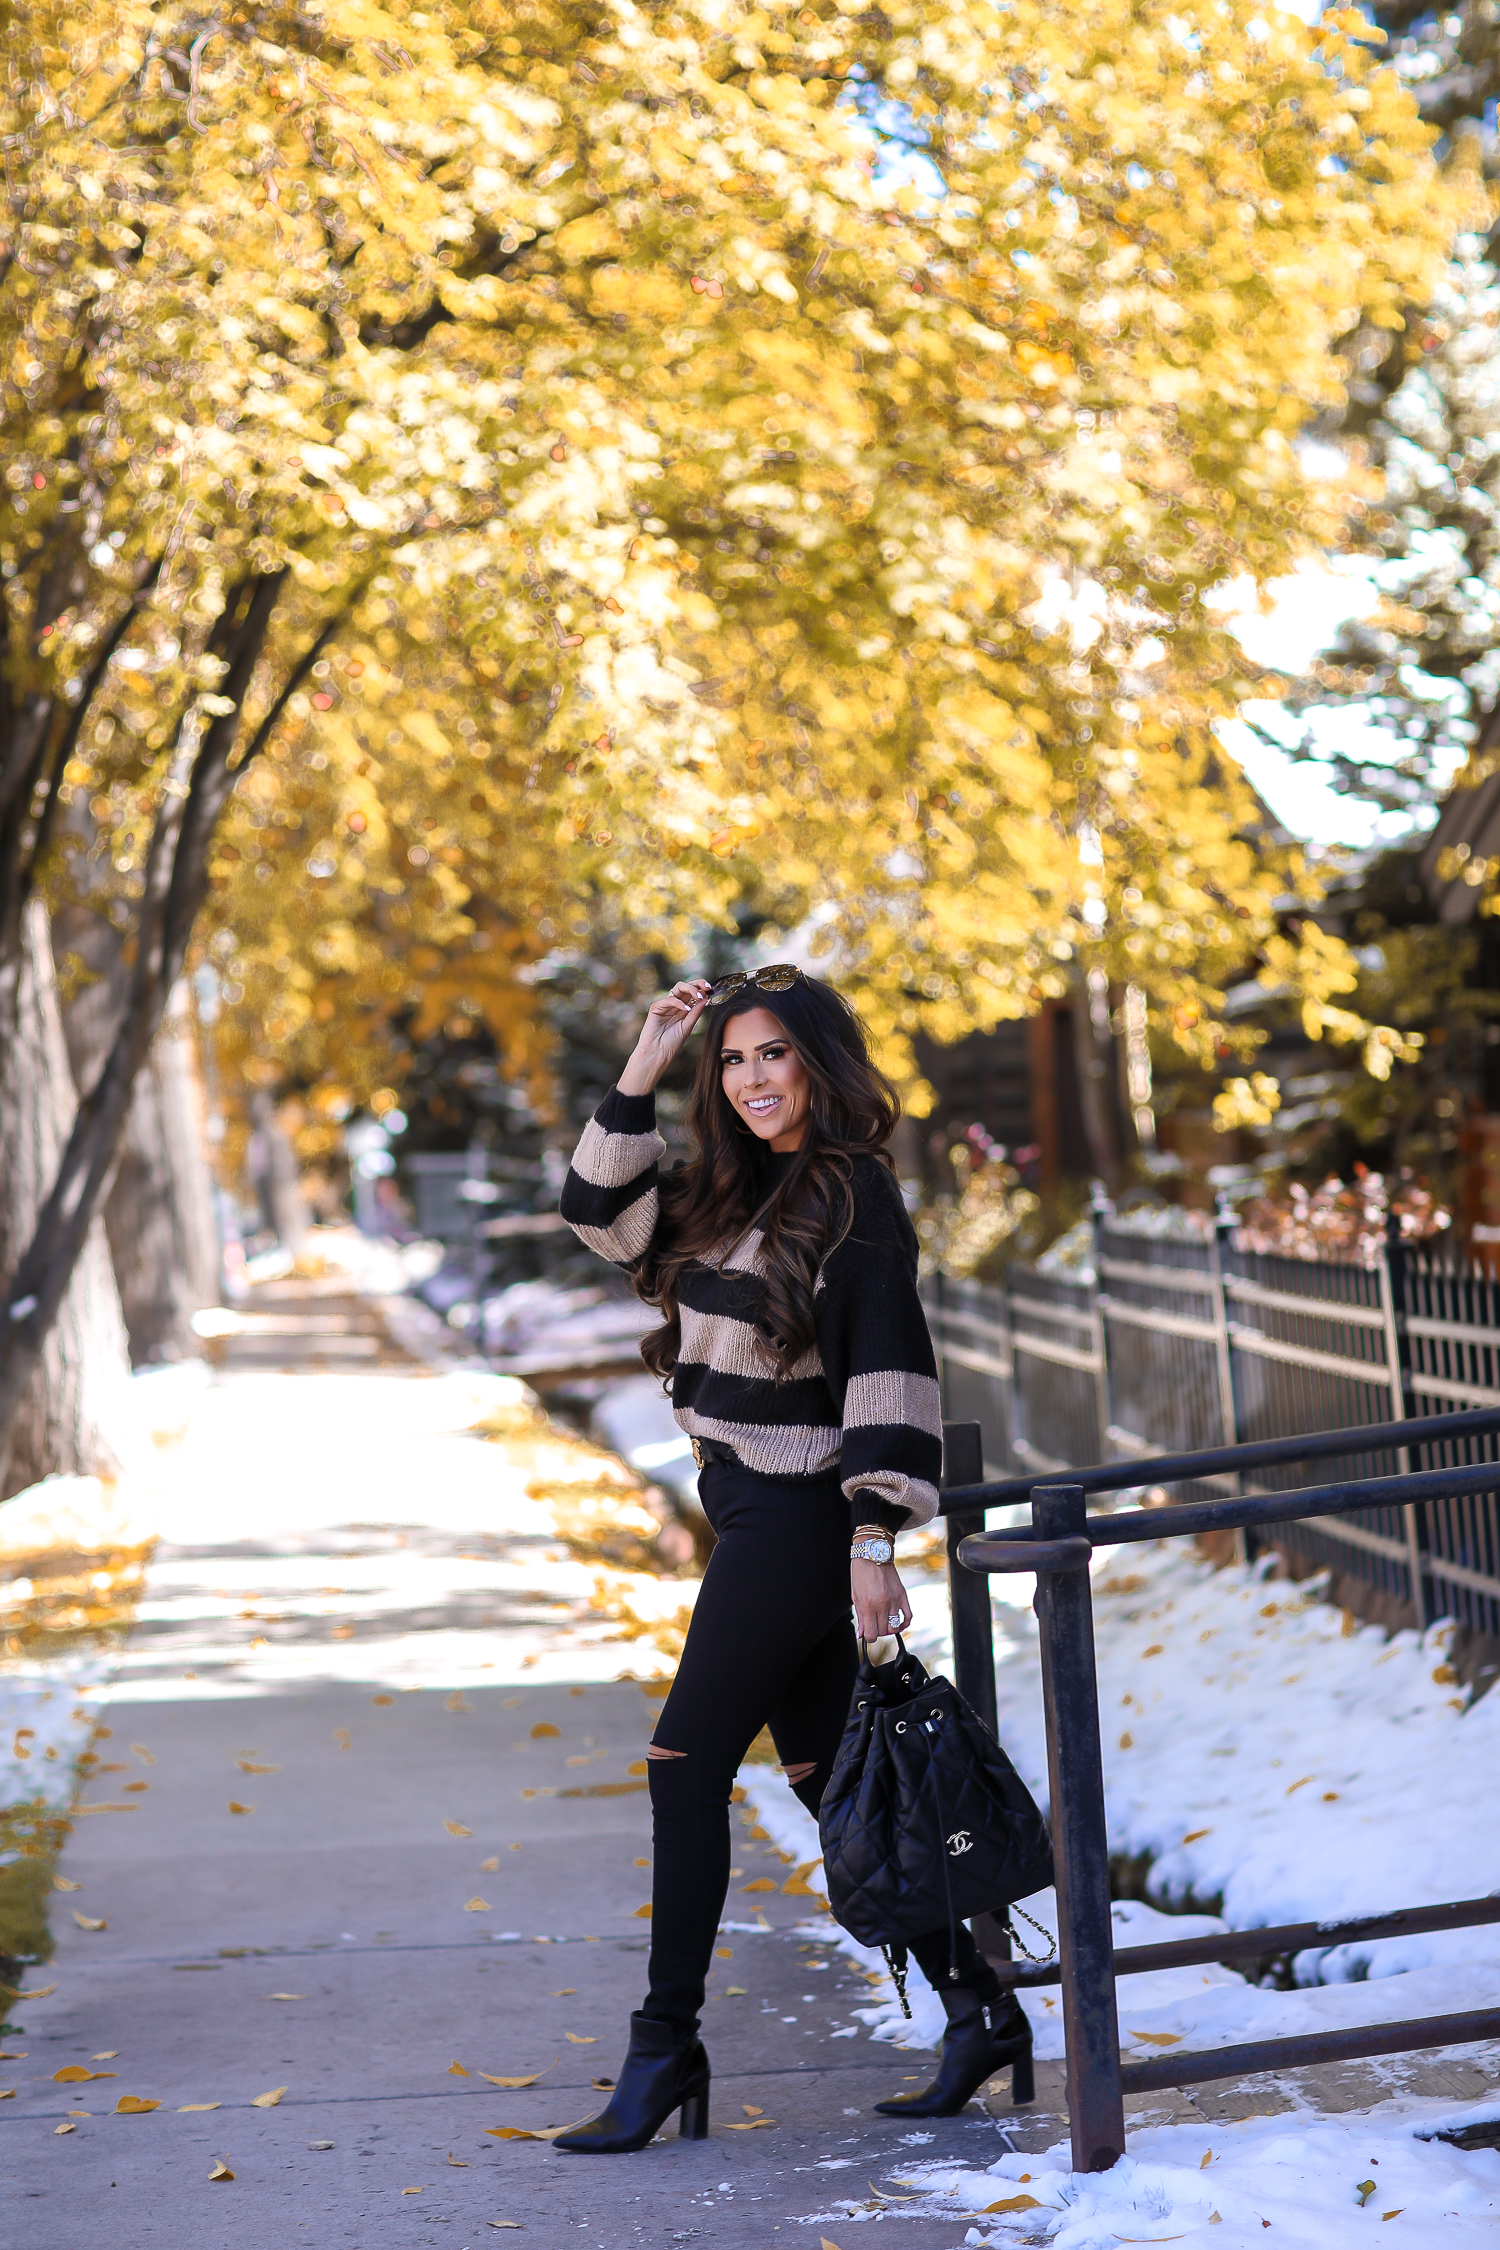 Fall outift ideas 2019 pinterest, Aspen what to wear fall, black chanel backpack quilted 2019, quay rimless aviator black, emily gemma, top popular fall fashion bloggers-2